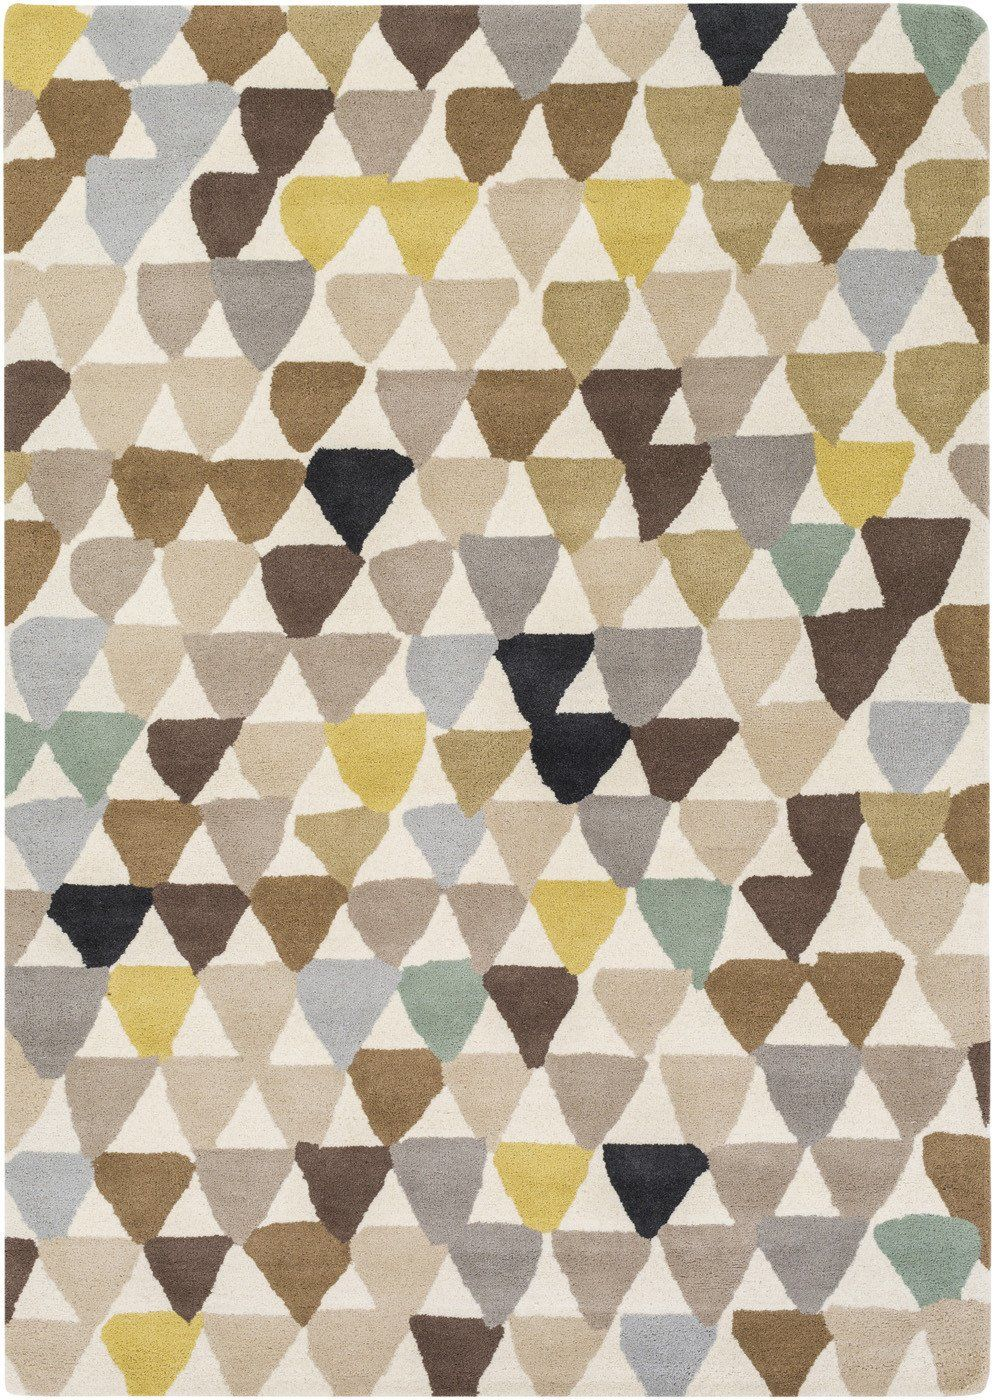 Hessian Rugs Surya Blowout Sale Up To 70 Off Hql8035 58 Harlequin Geometric Area Rug Yellow Neutral Only Only 876 60 At Contemporary Furniture Warehouse